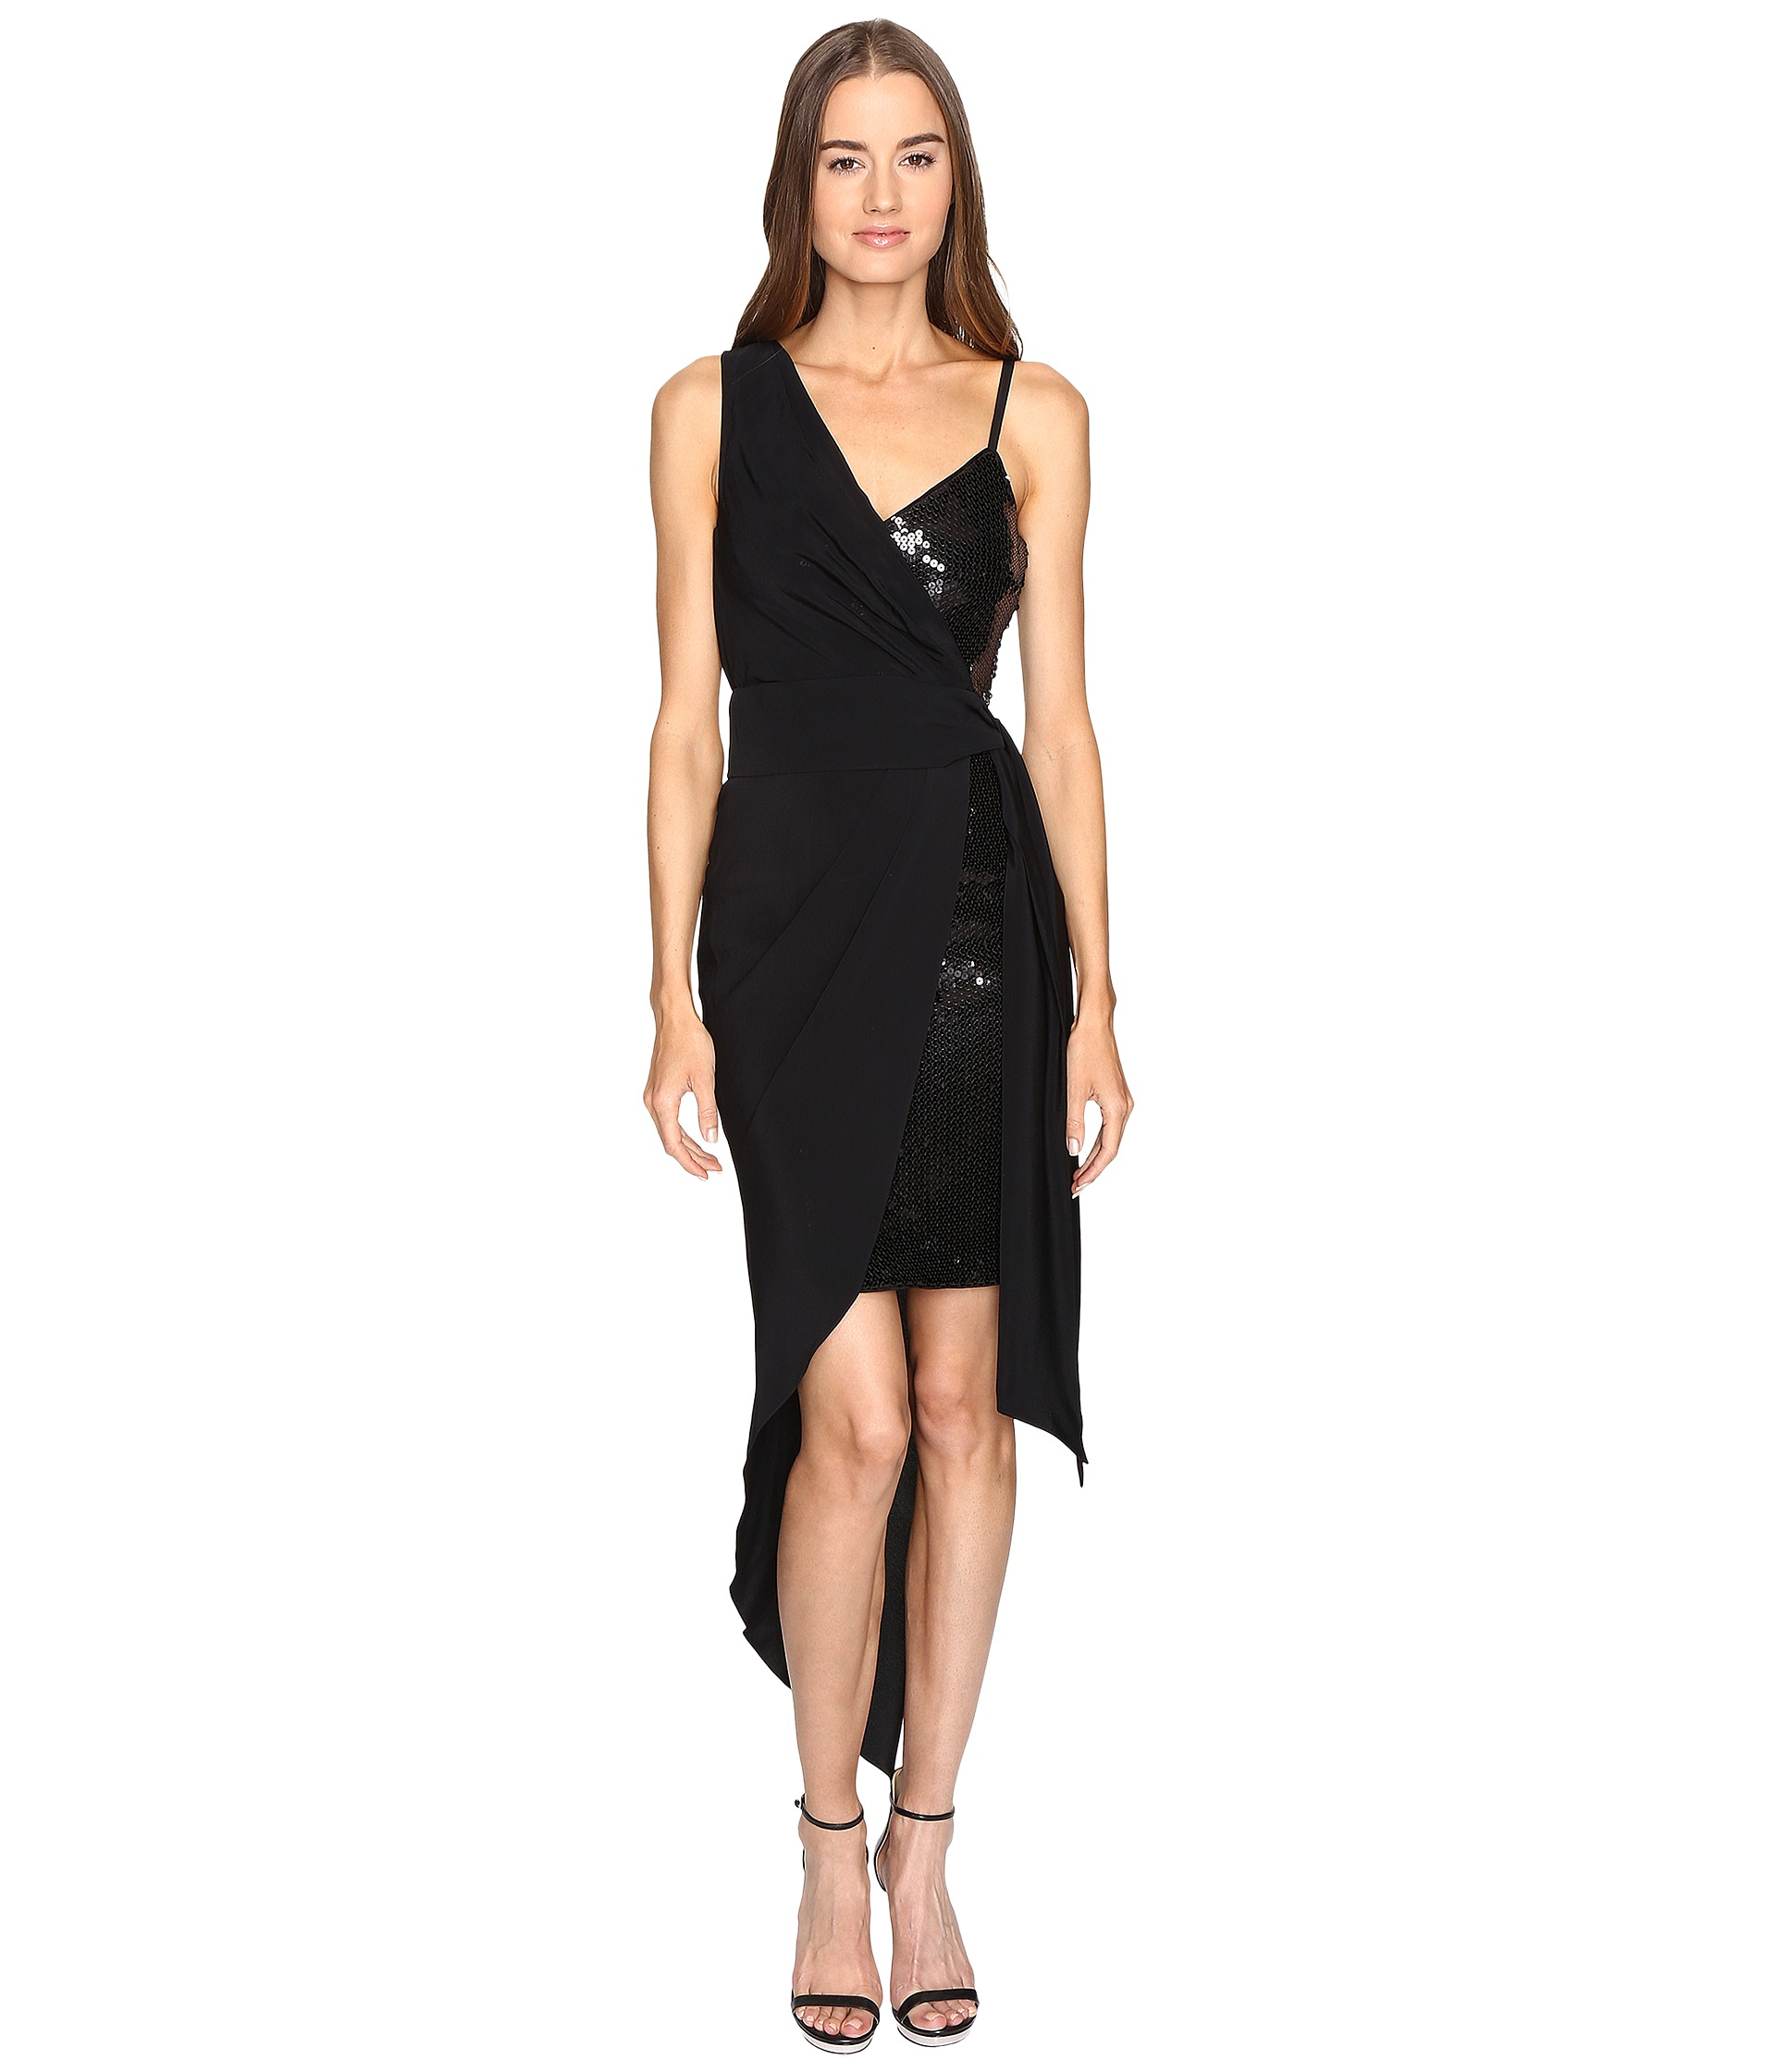 Black Cocktail Dresses for Women  Shipped Free at Zappos